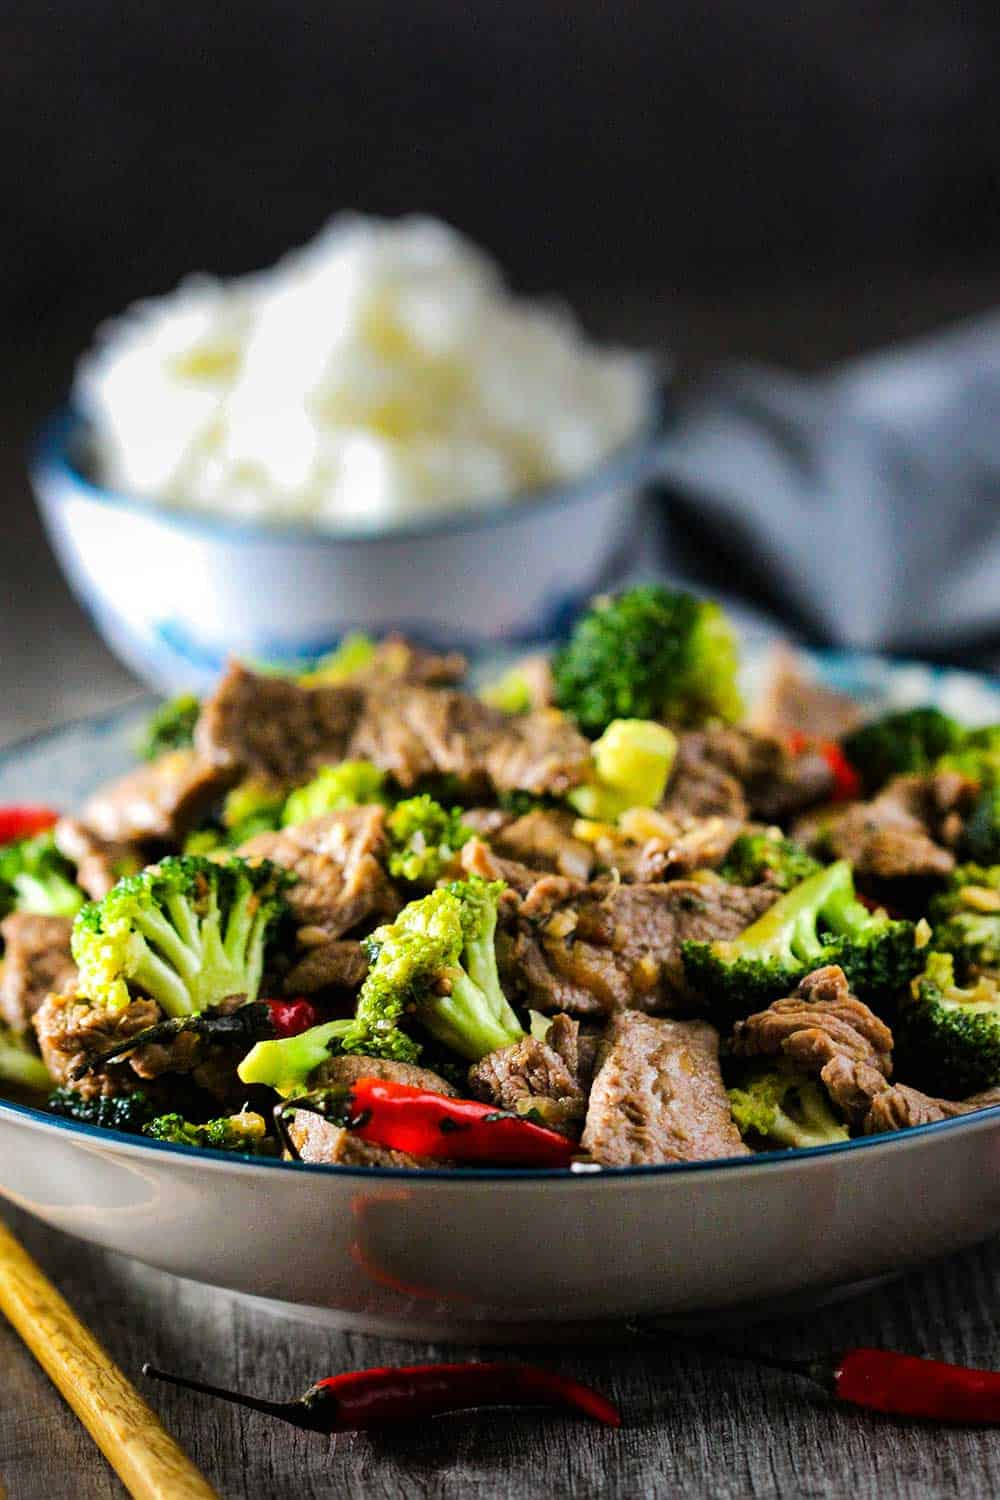 A bowl of beef and broccoli stir-fry with Jasmine rice.